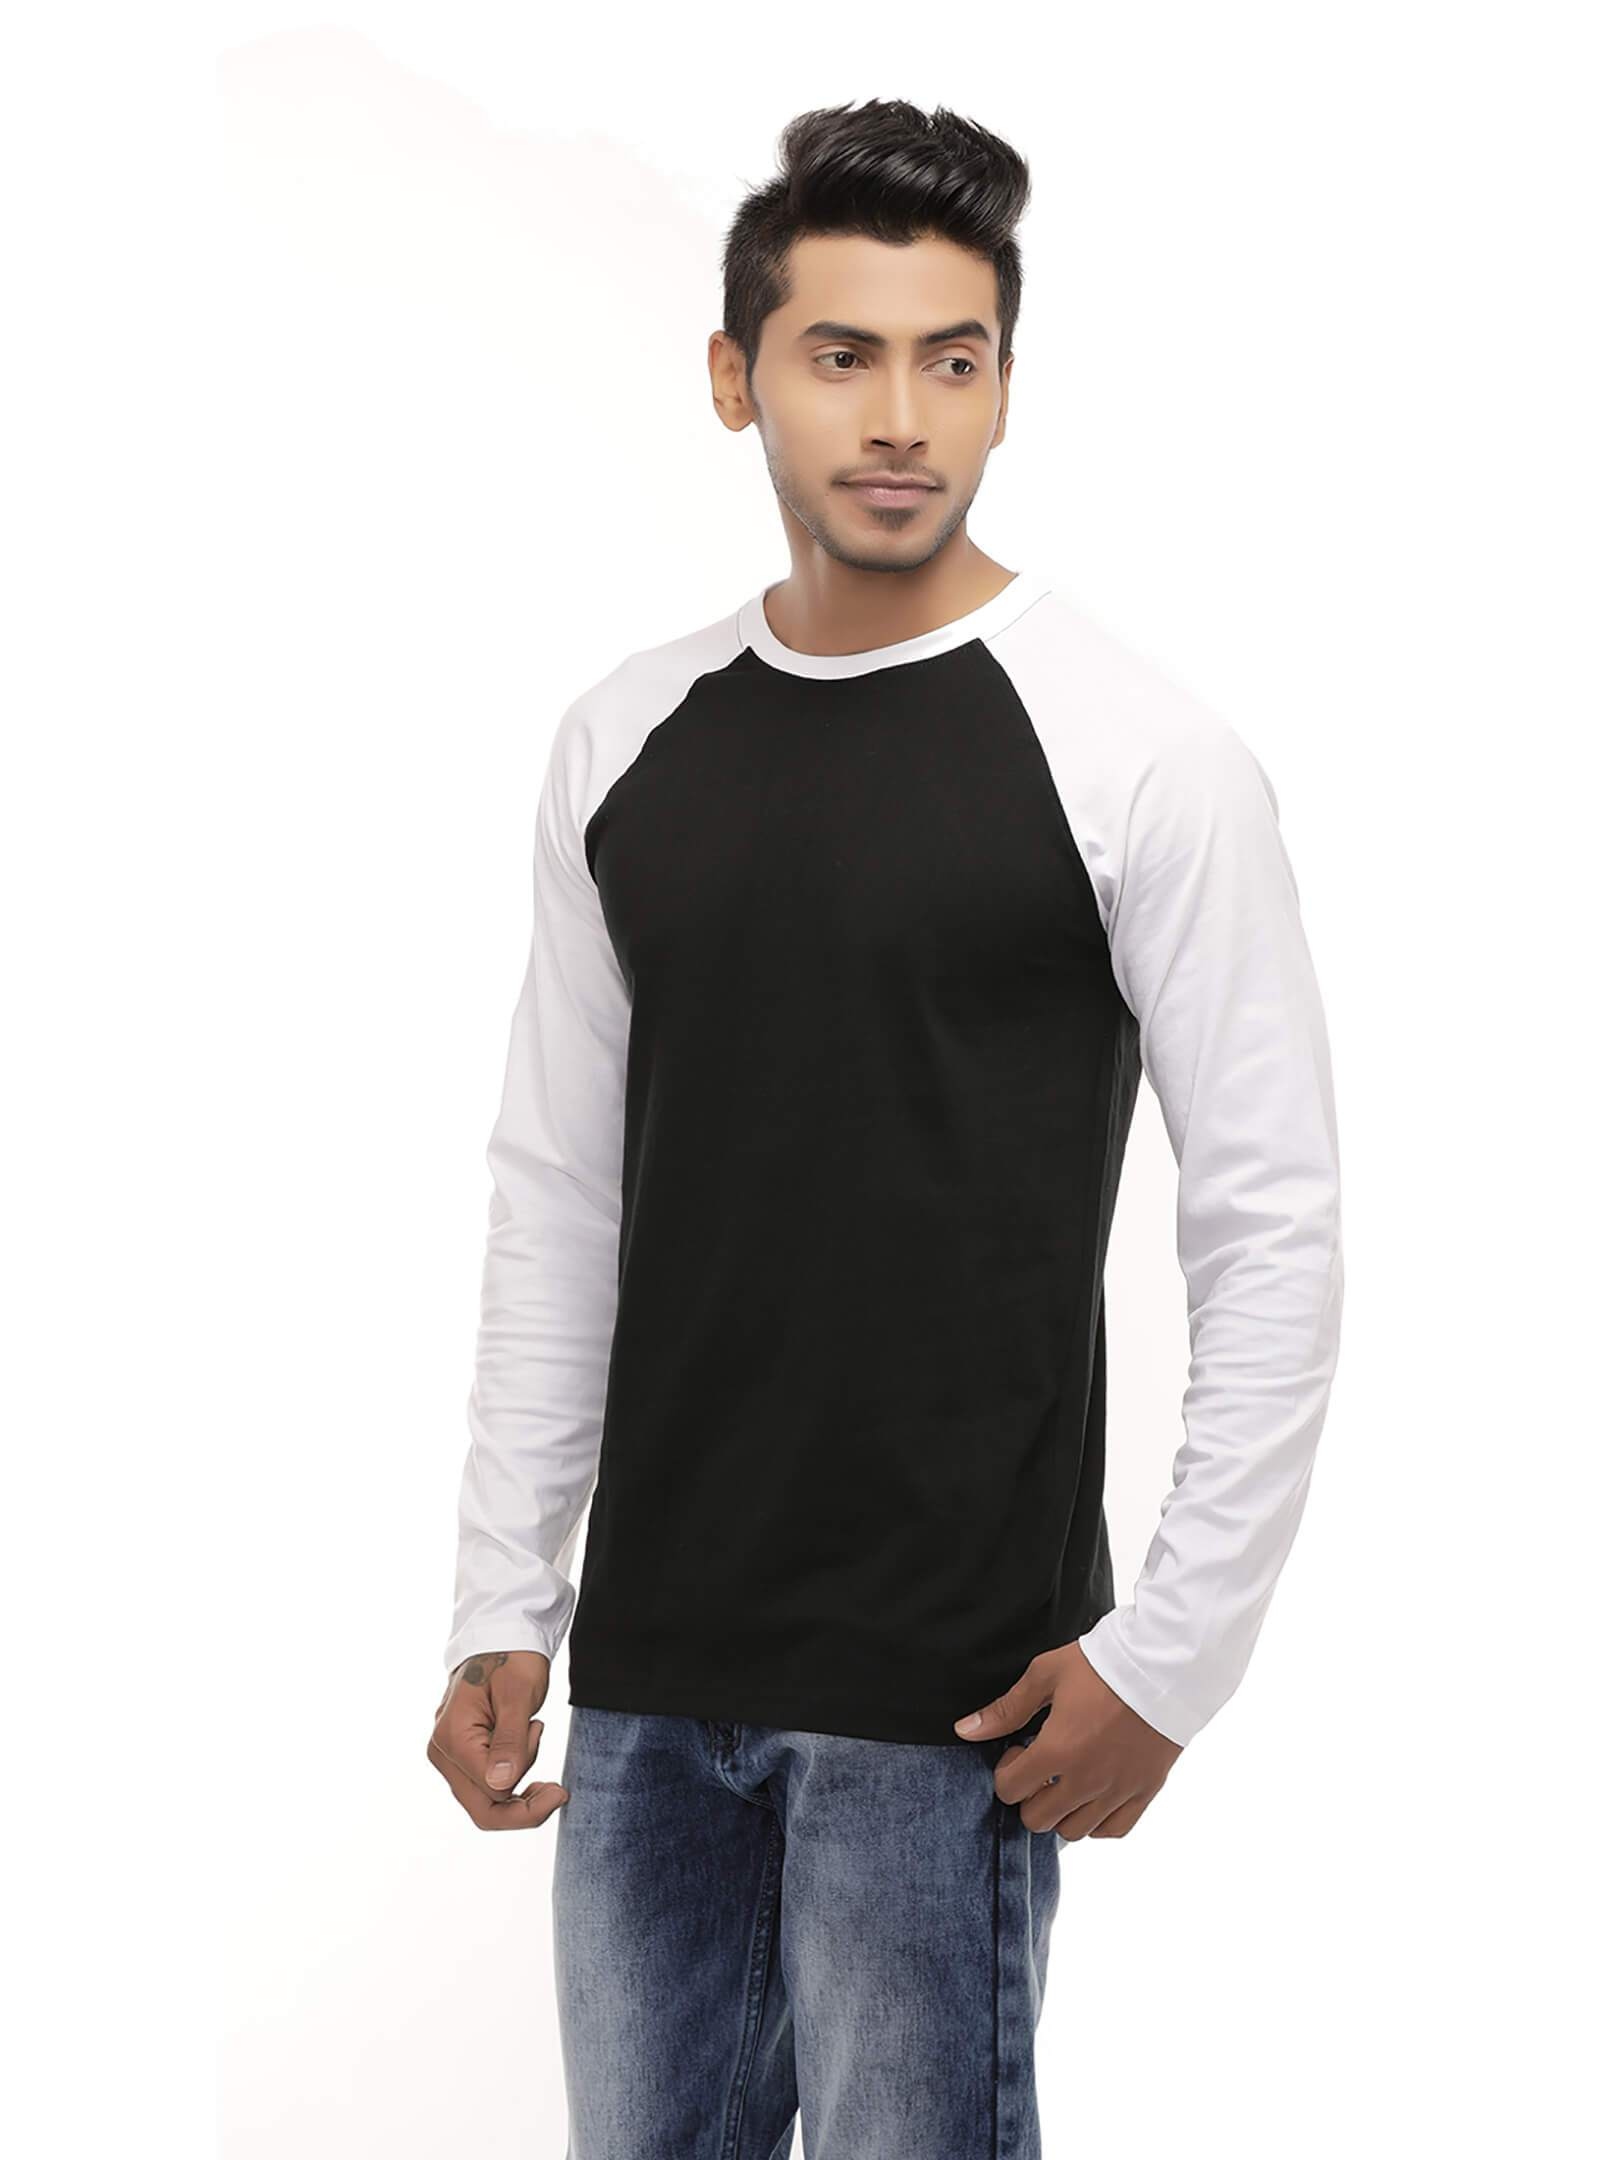 Amrak Men's Round Neck Full Sleeves Raglan - White & Black